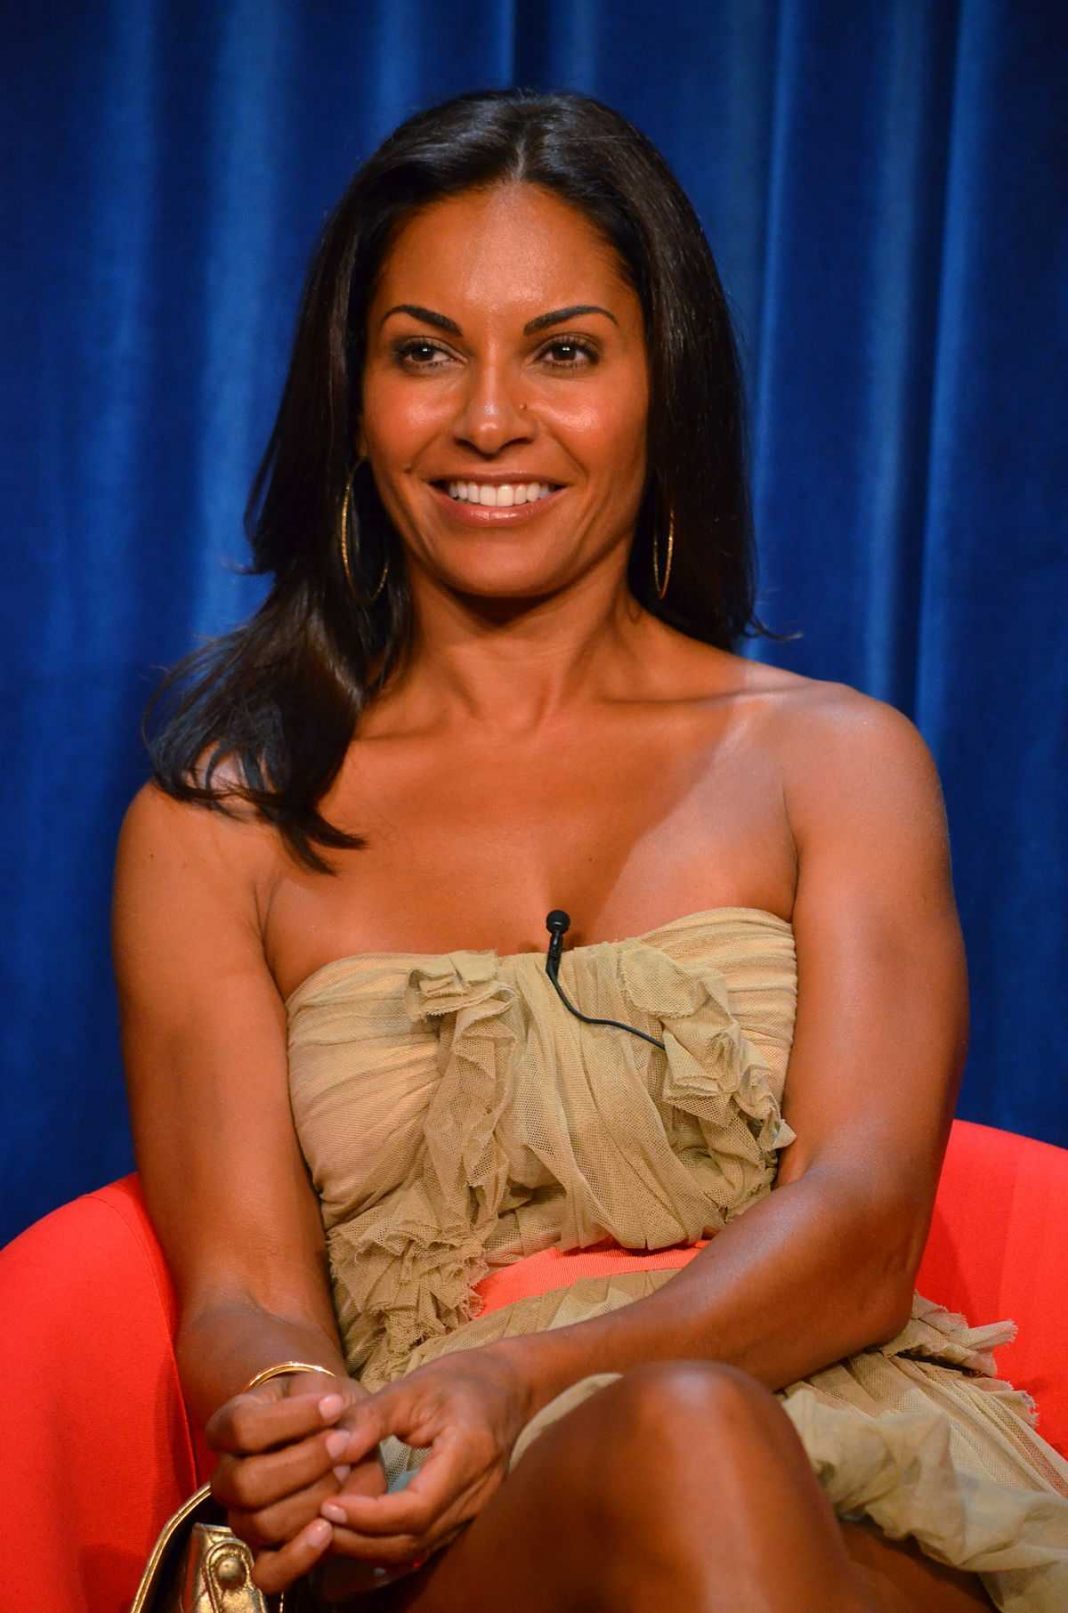 44 Salli Richardson-Whitfield Nude Pictures Are Genuinely